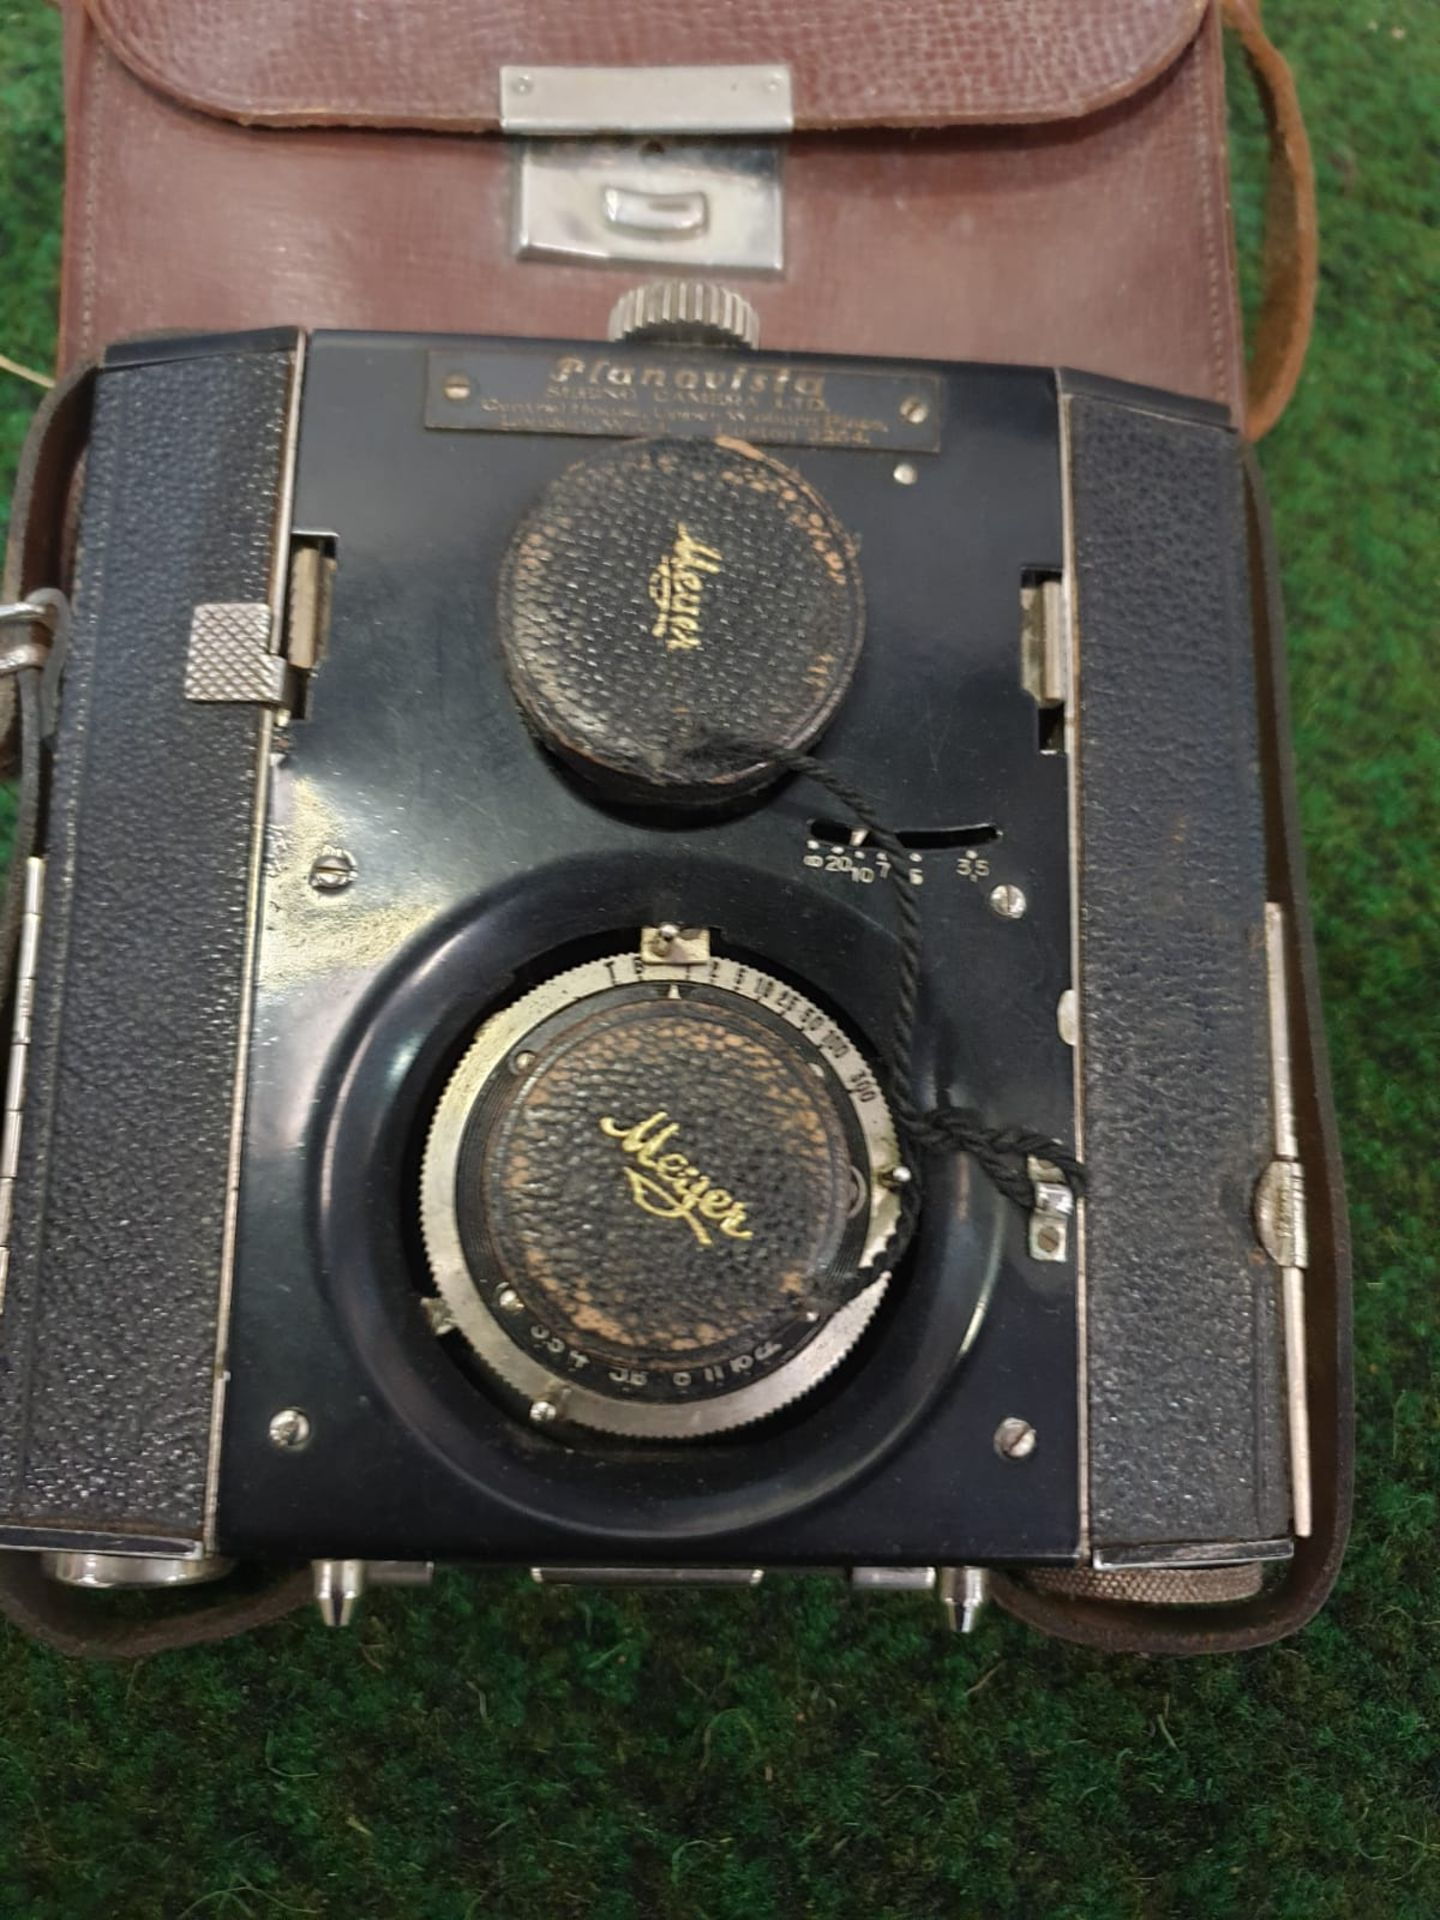 Planovista Twin Lens no. 721 Curt Bentzin, Germany; 127-rollfilm, with viewing lens and aMeyer- Image 2 of 3